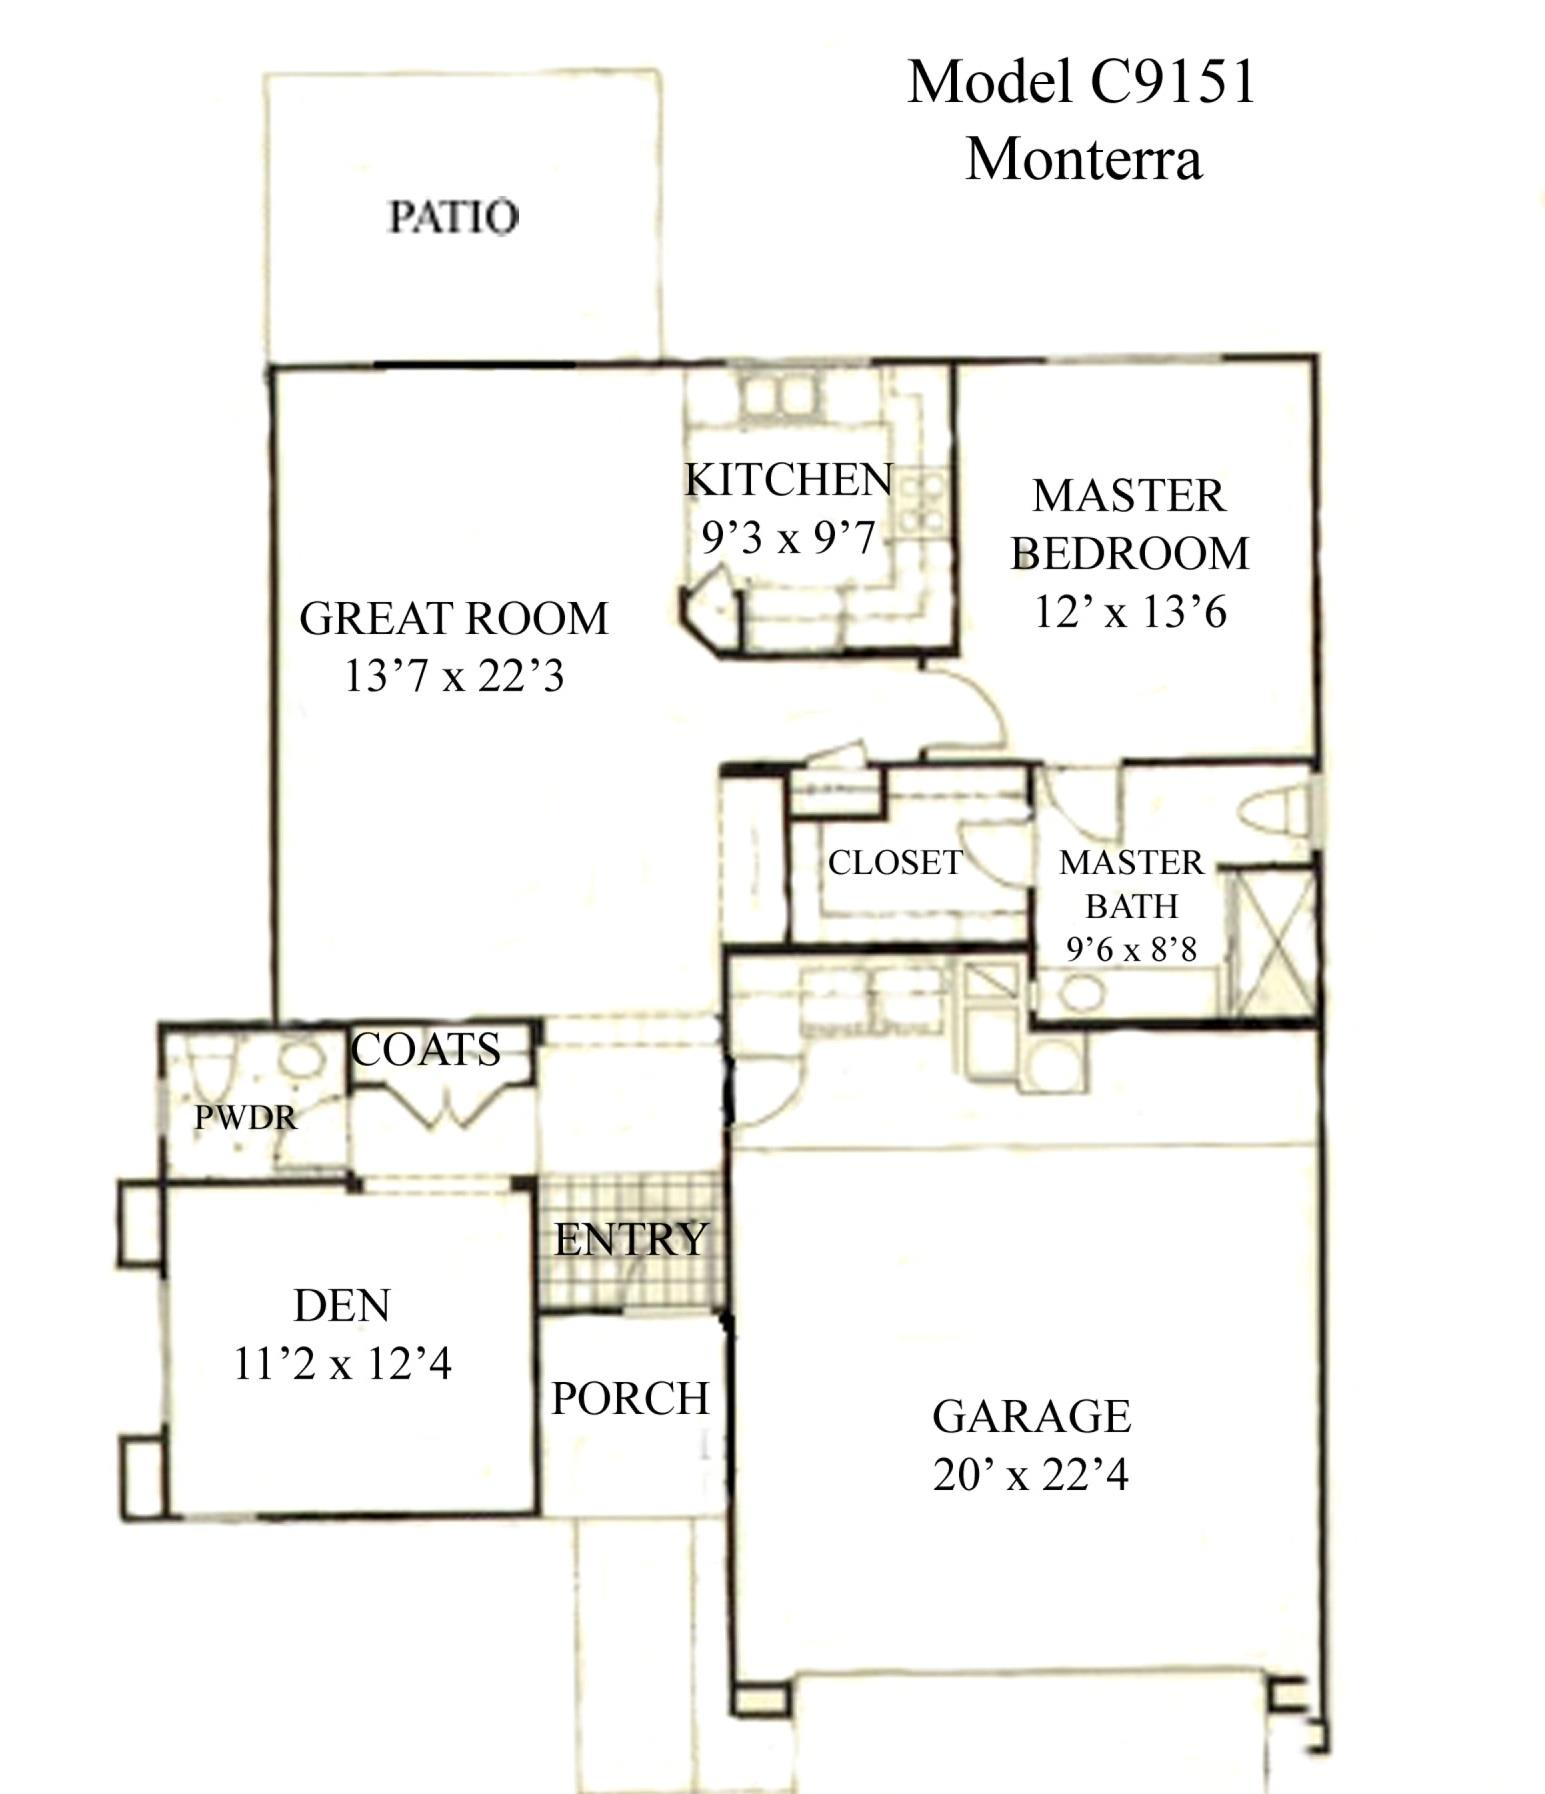 Sun City Grand Monterra floor plan, Del Webb Sun City Grand Floor Plan Model Home House Plans Floorplans Models in Surprise Phoenix Arizona AZ Ken Meade Realty Kathy Anderson